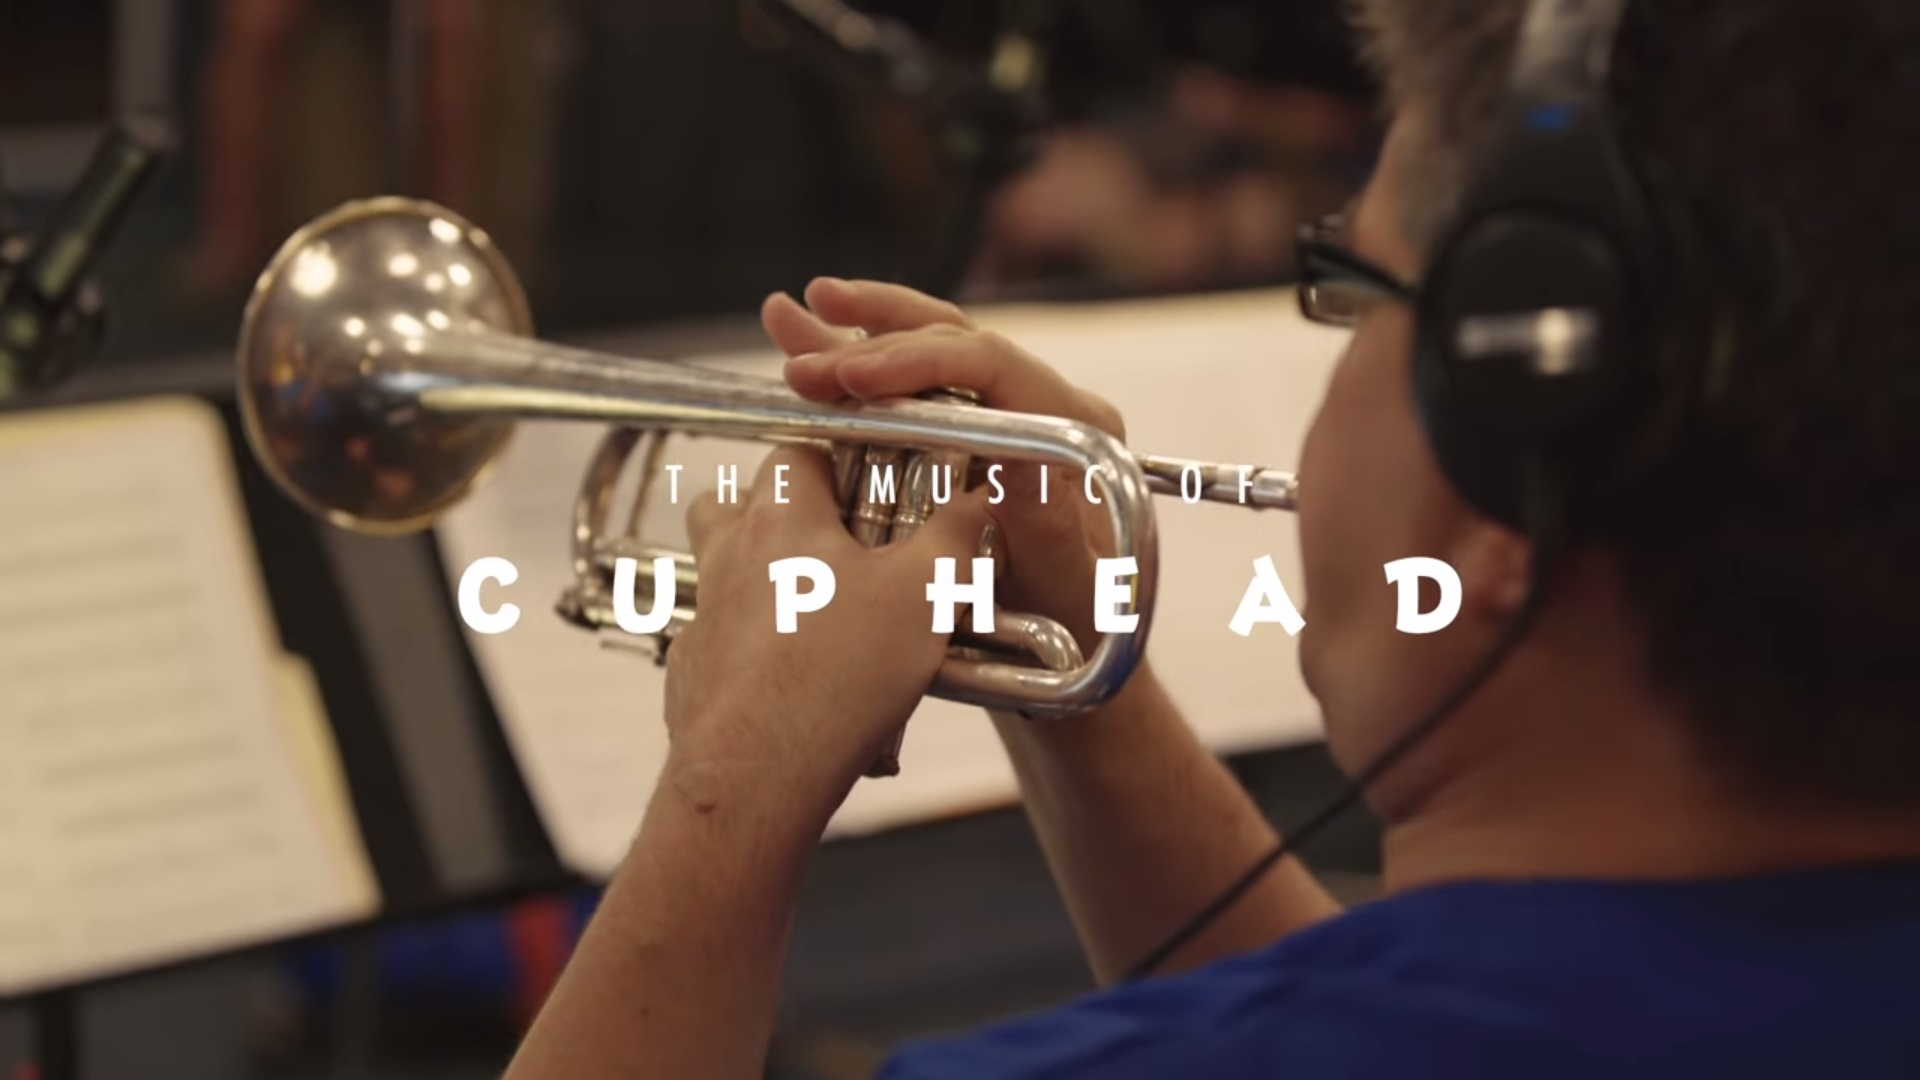 Get a glimpse of the music behind ultra-hard platformer 'Cuphead' | DeviceDaily.com